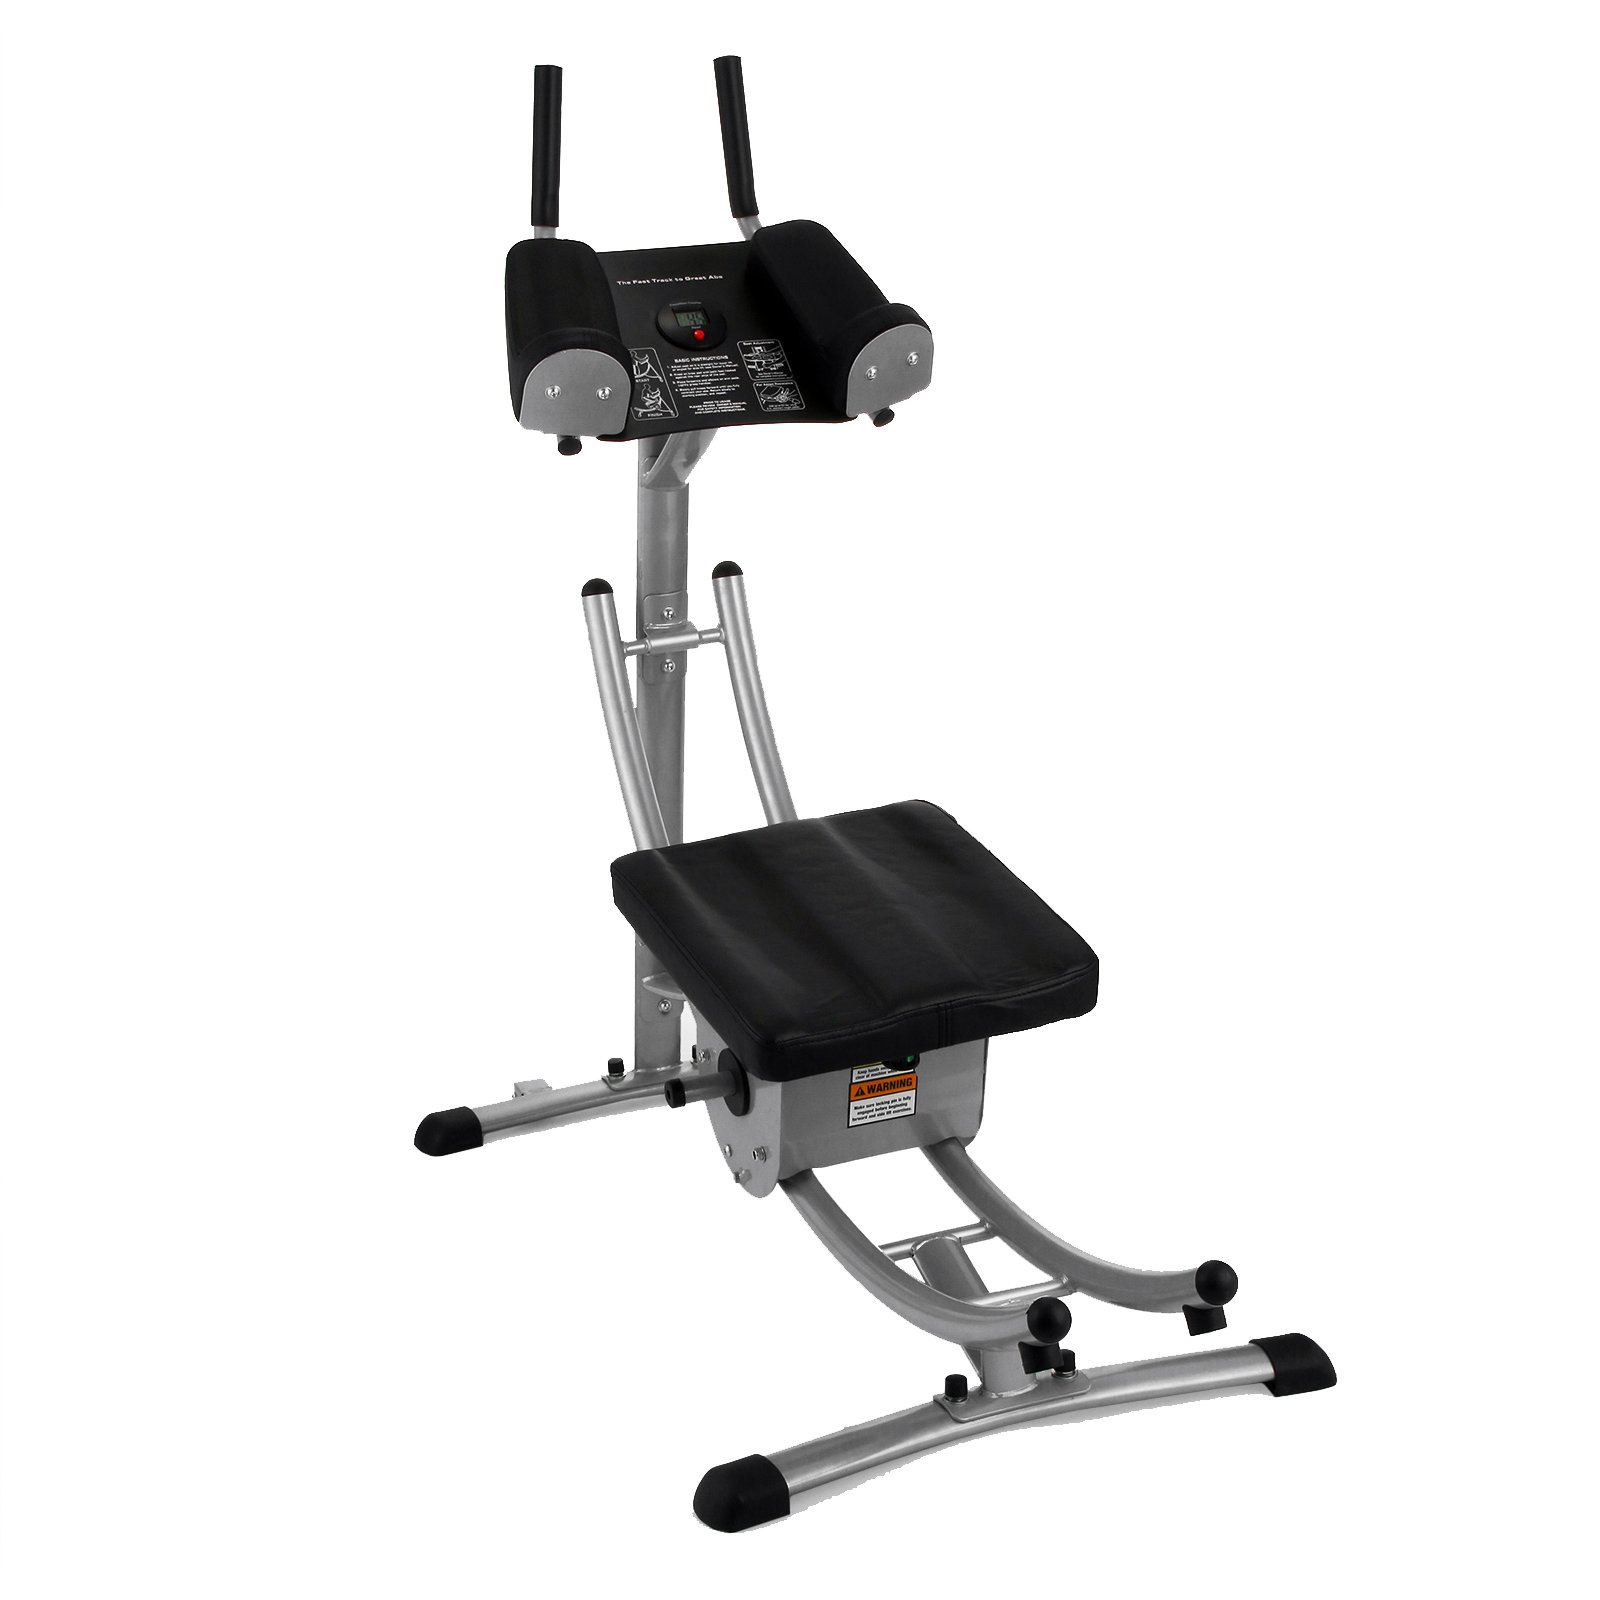 Abcoaster Max Deluxe with Weights- The Back & Neck Safe, Abdominal Fitness Machine by Ab Coaster (Image #7)